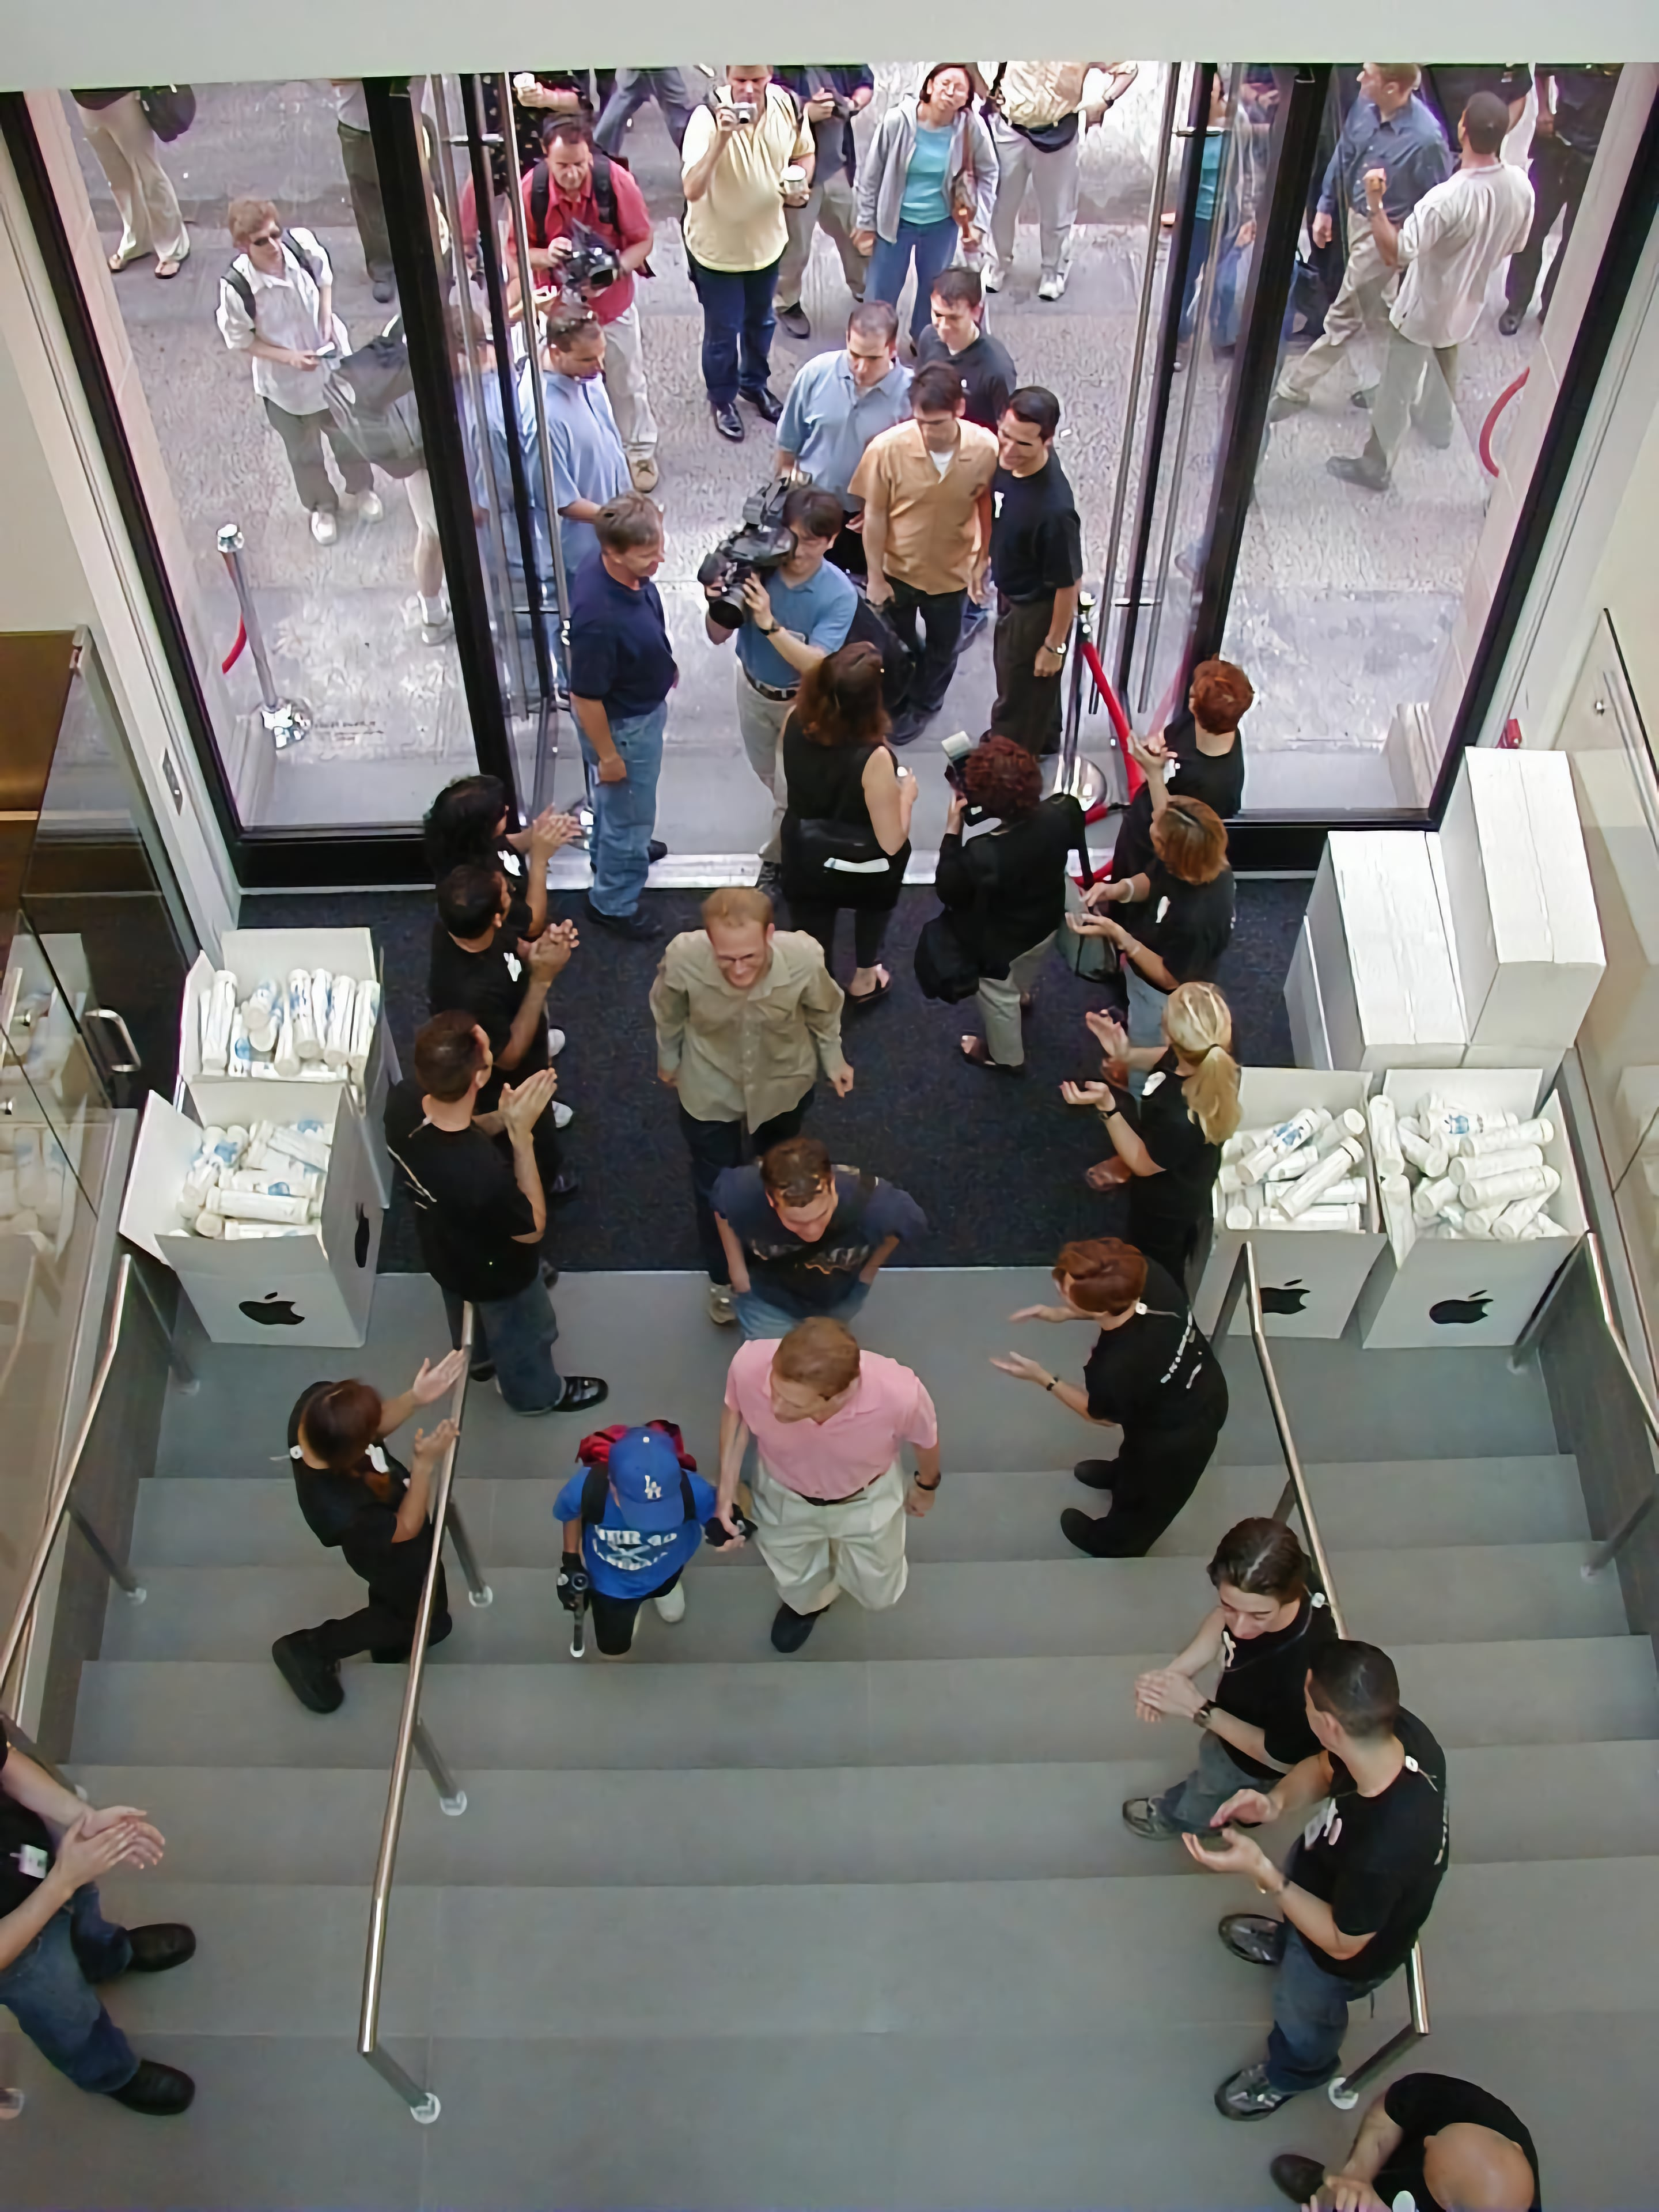 Customers walk up steps to enter Apple SoHo on grand opening day.